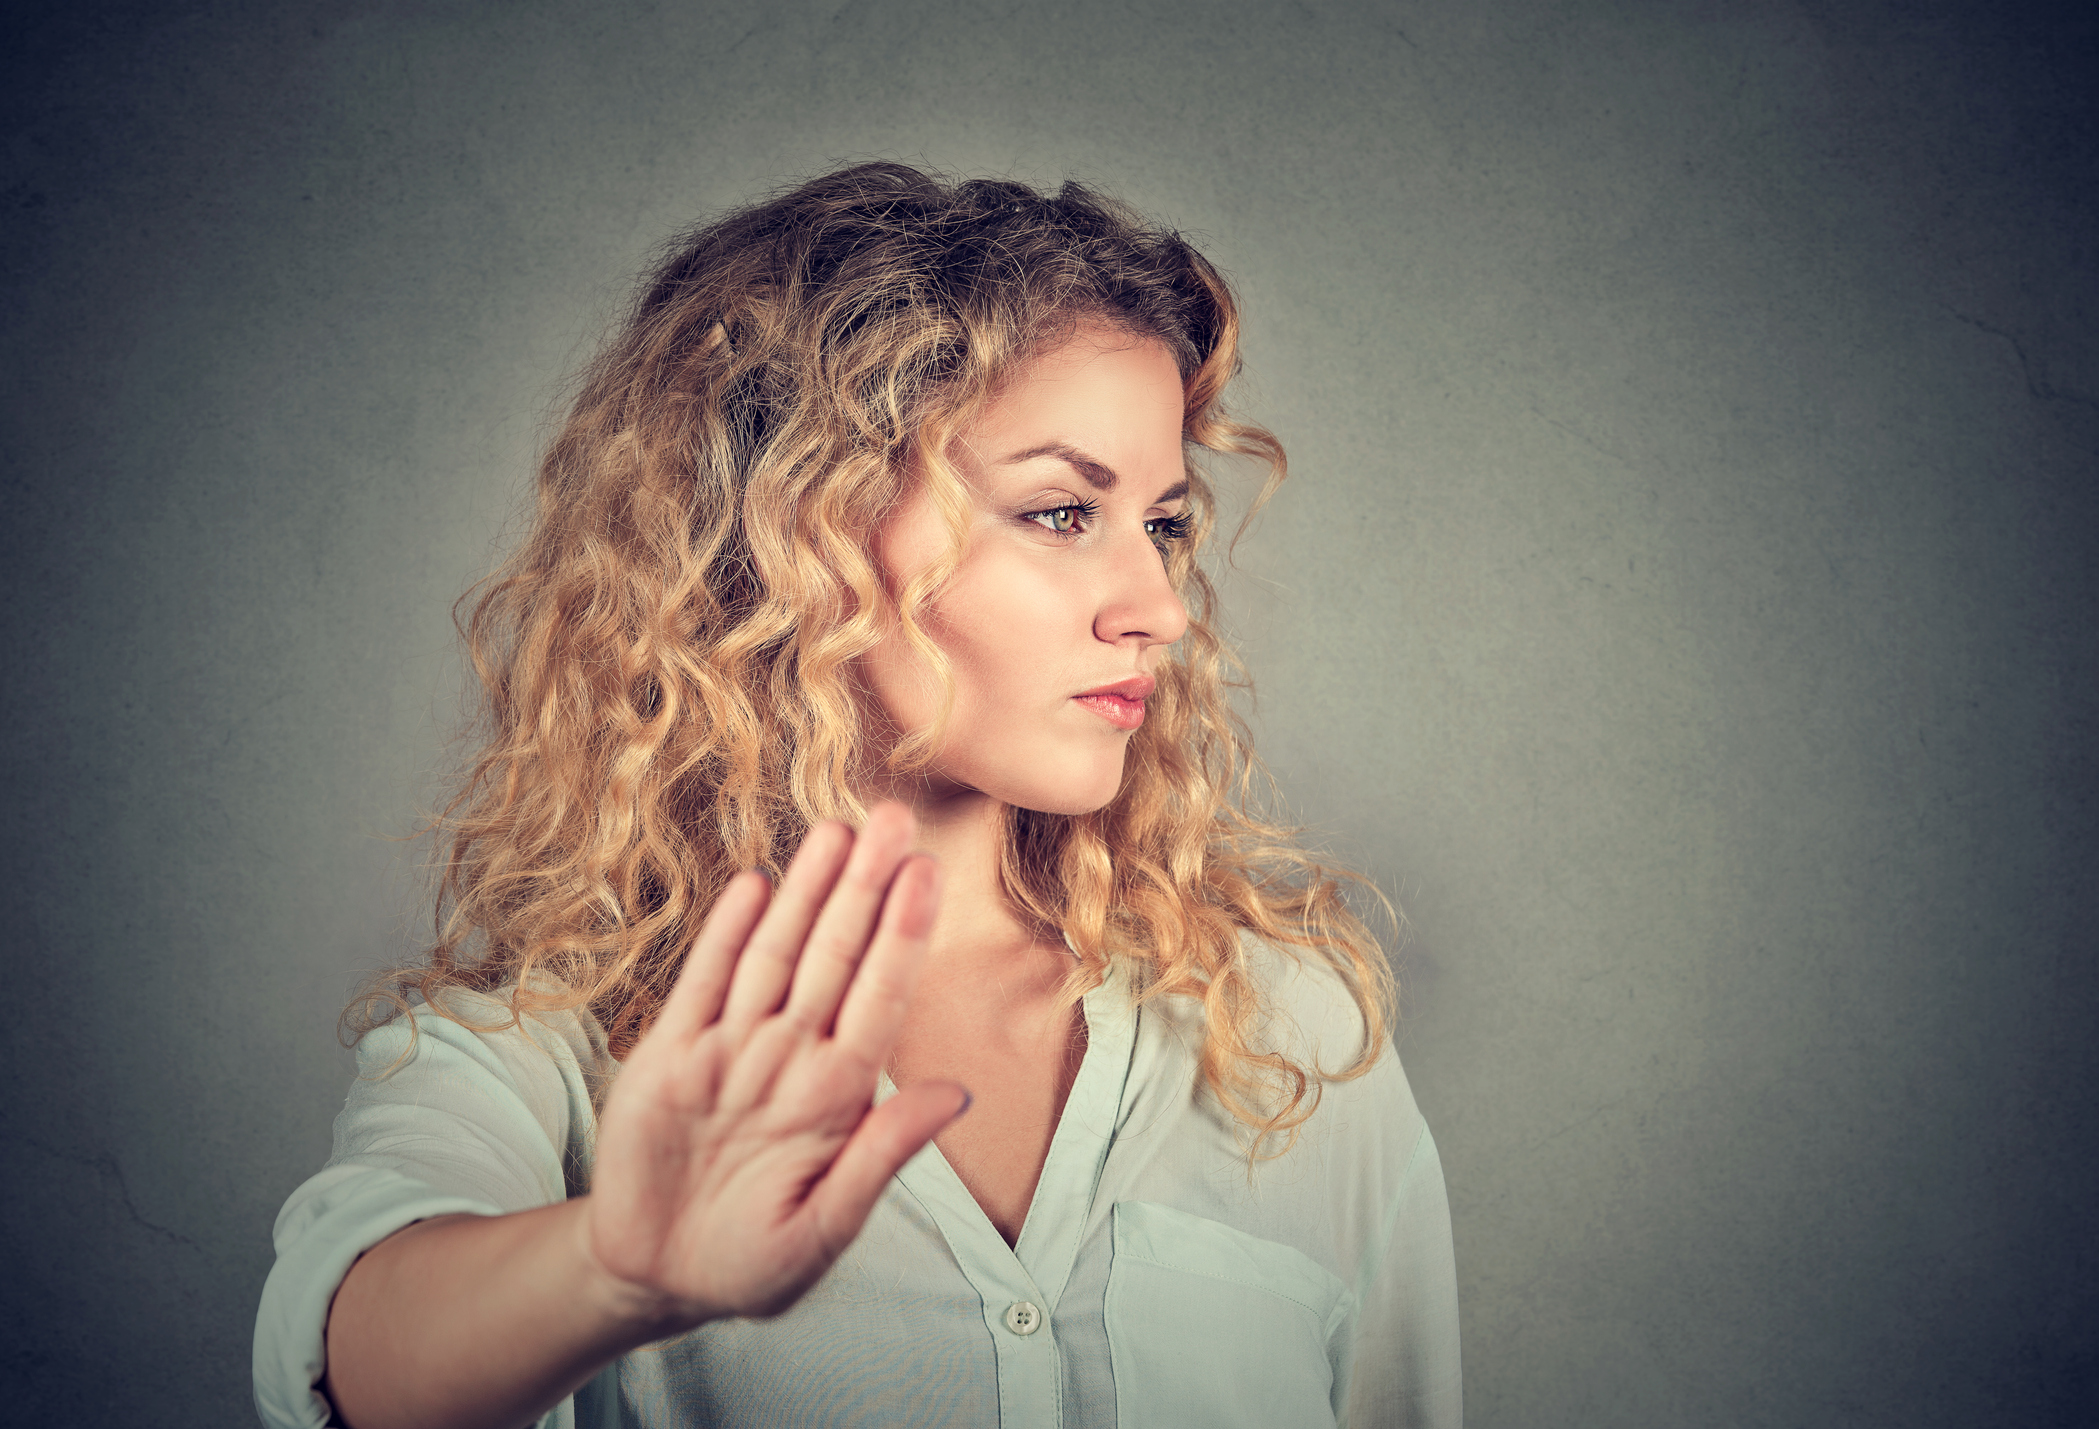 Annoyed woman with bad attitude giving talk to hand gesture.